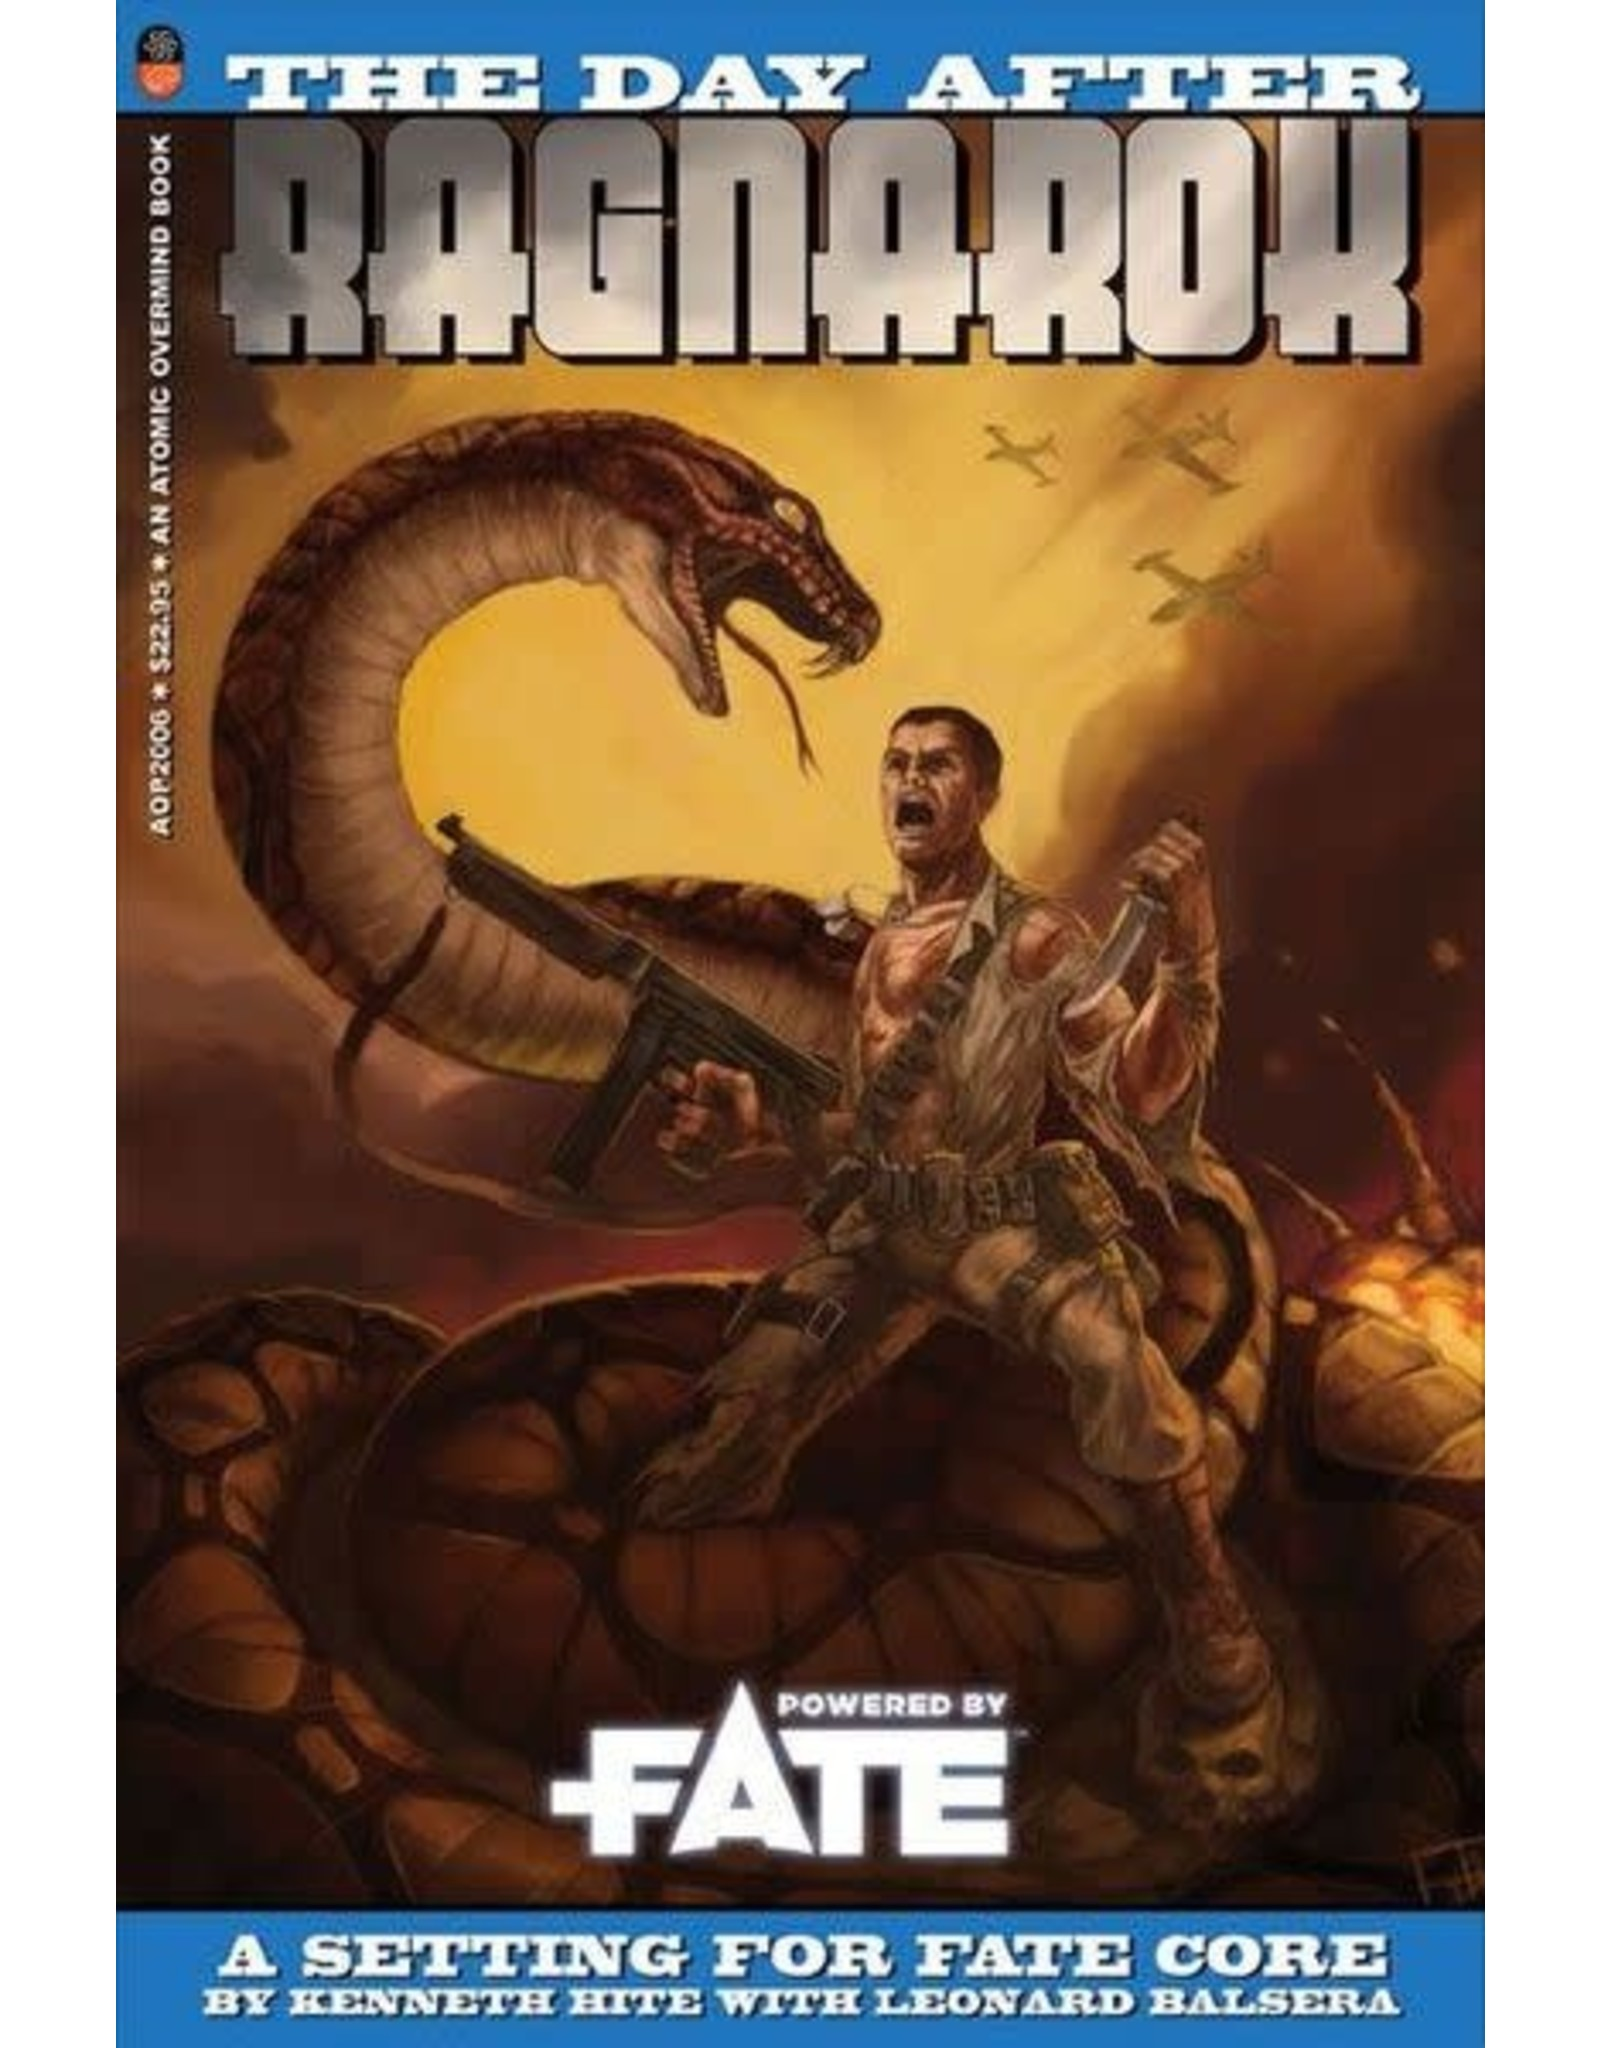 Evil Hat Productions Fate: The Day After Ragnarok